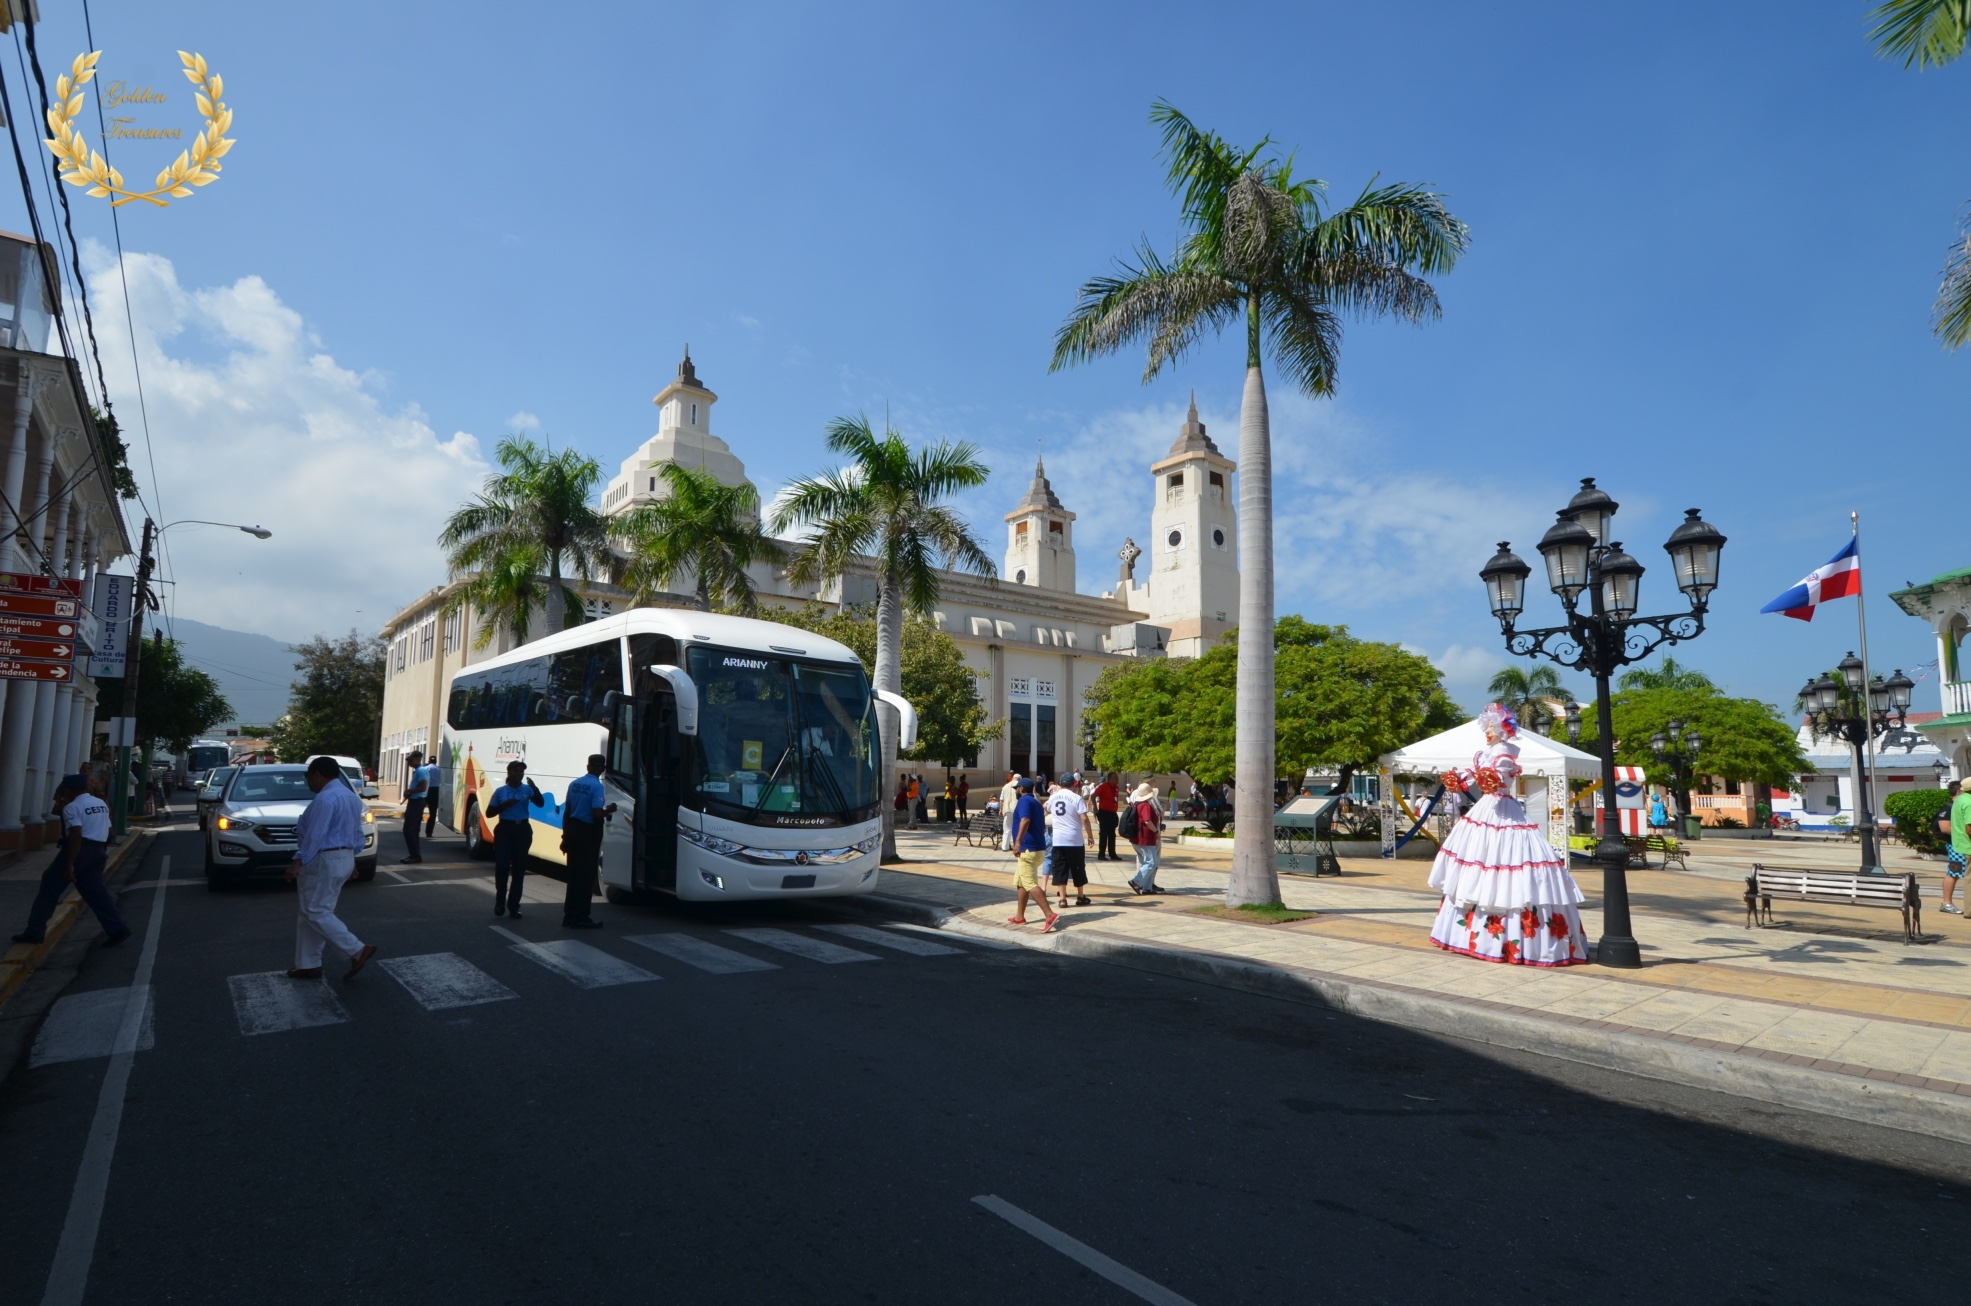 tourists arrive at the central park in Puerto Plata, Dominican Republic.